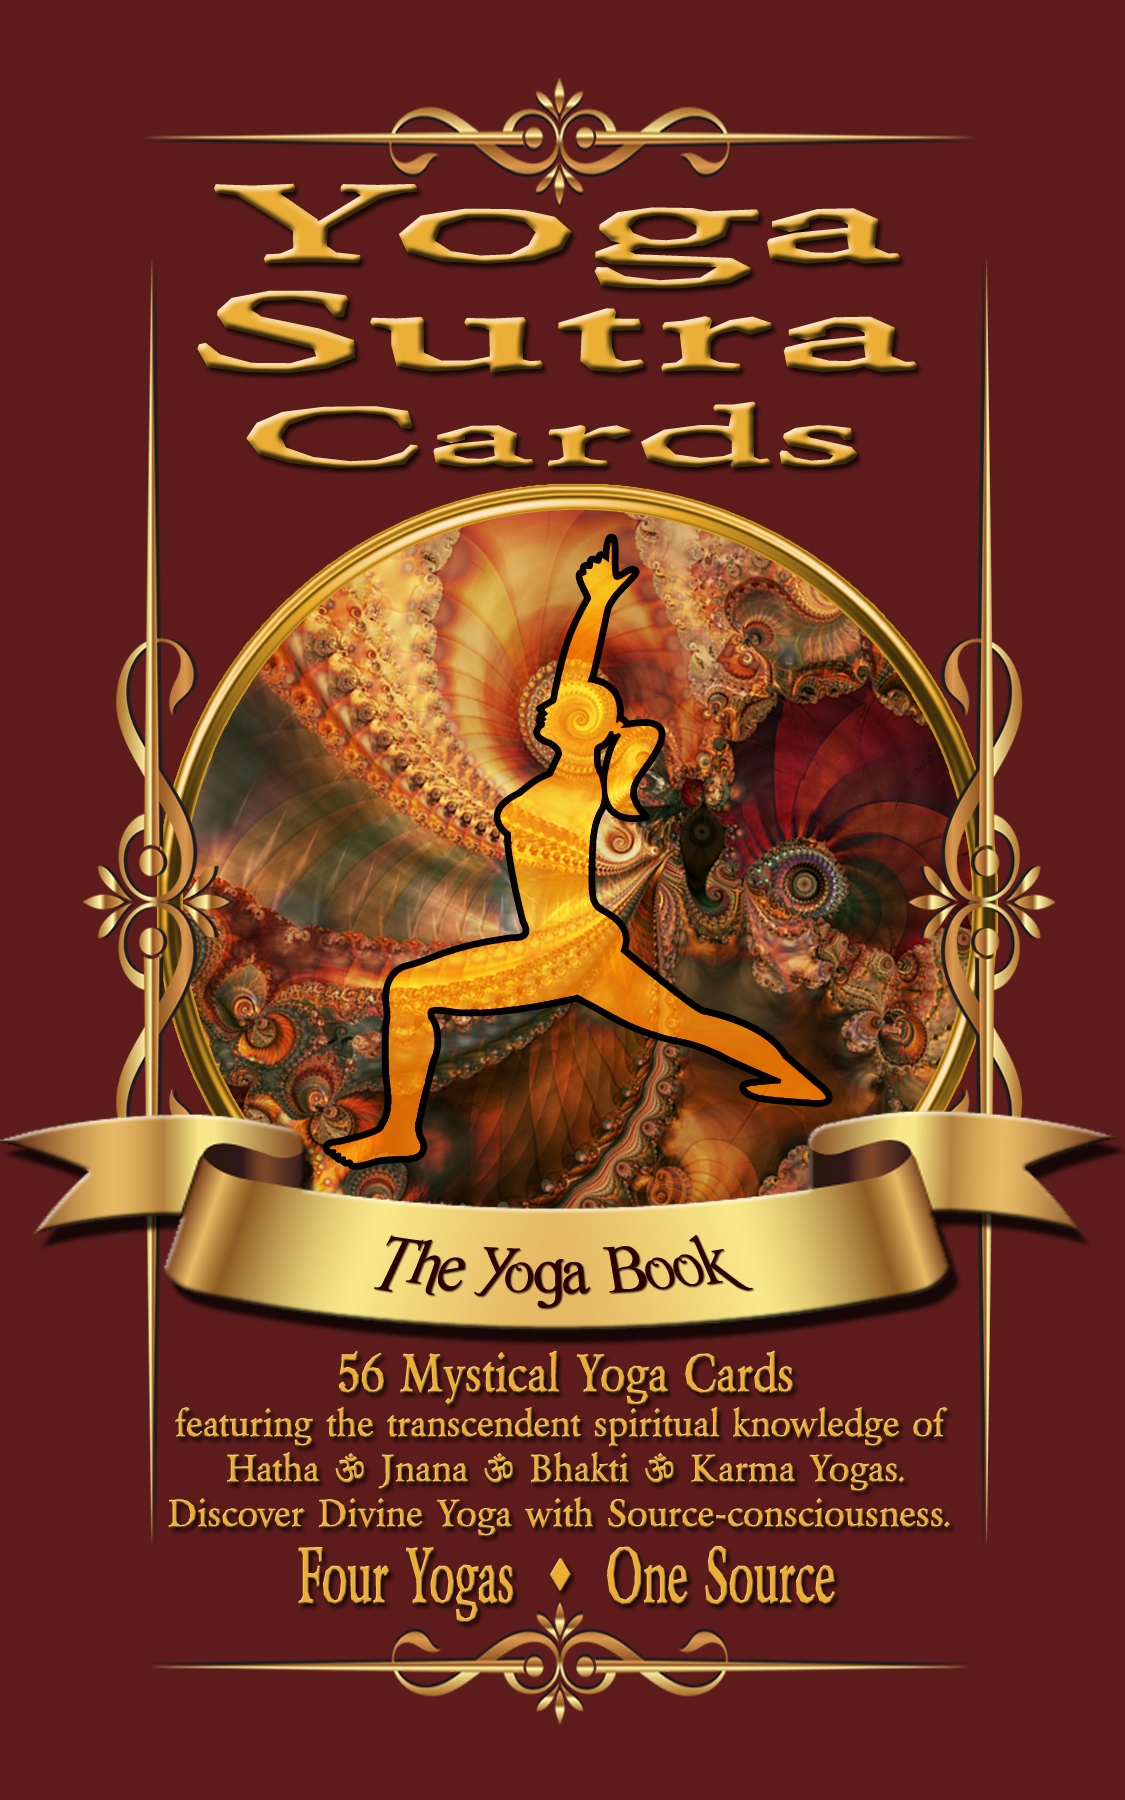 Yoga Sutra Cards Book by Lalla and SamadhiDev. Four kinds of yoga in one deck. Hatha. Jnana. Bhakti. Karma